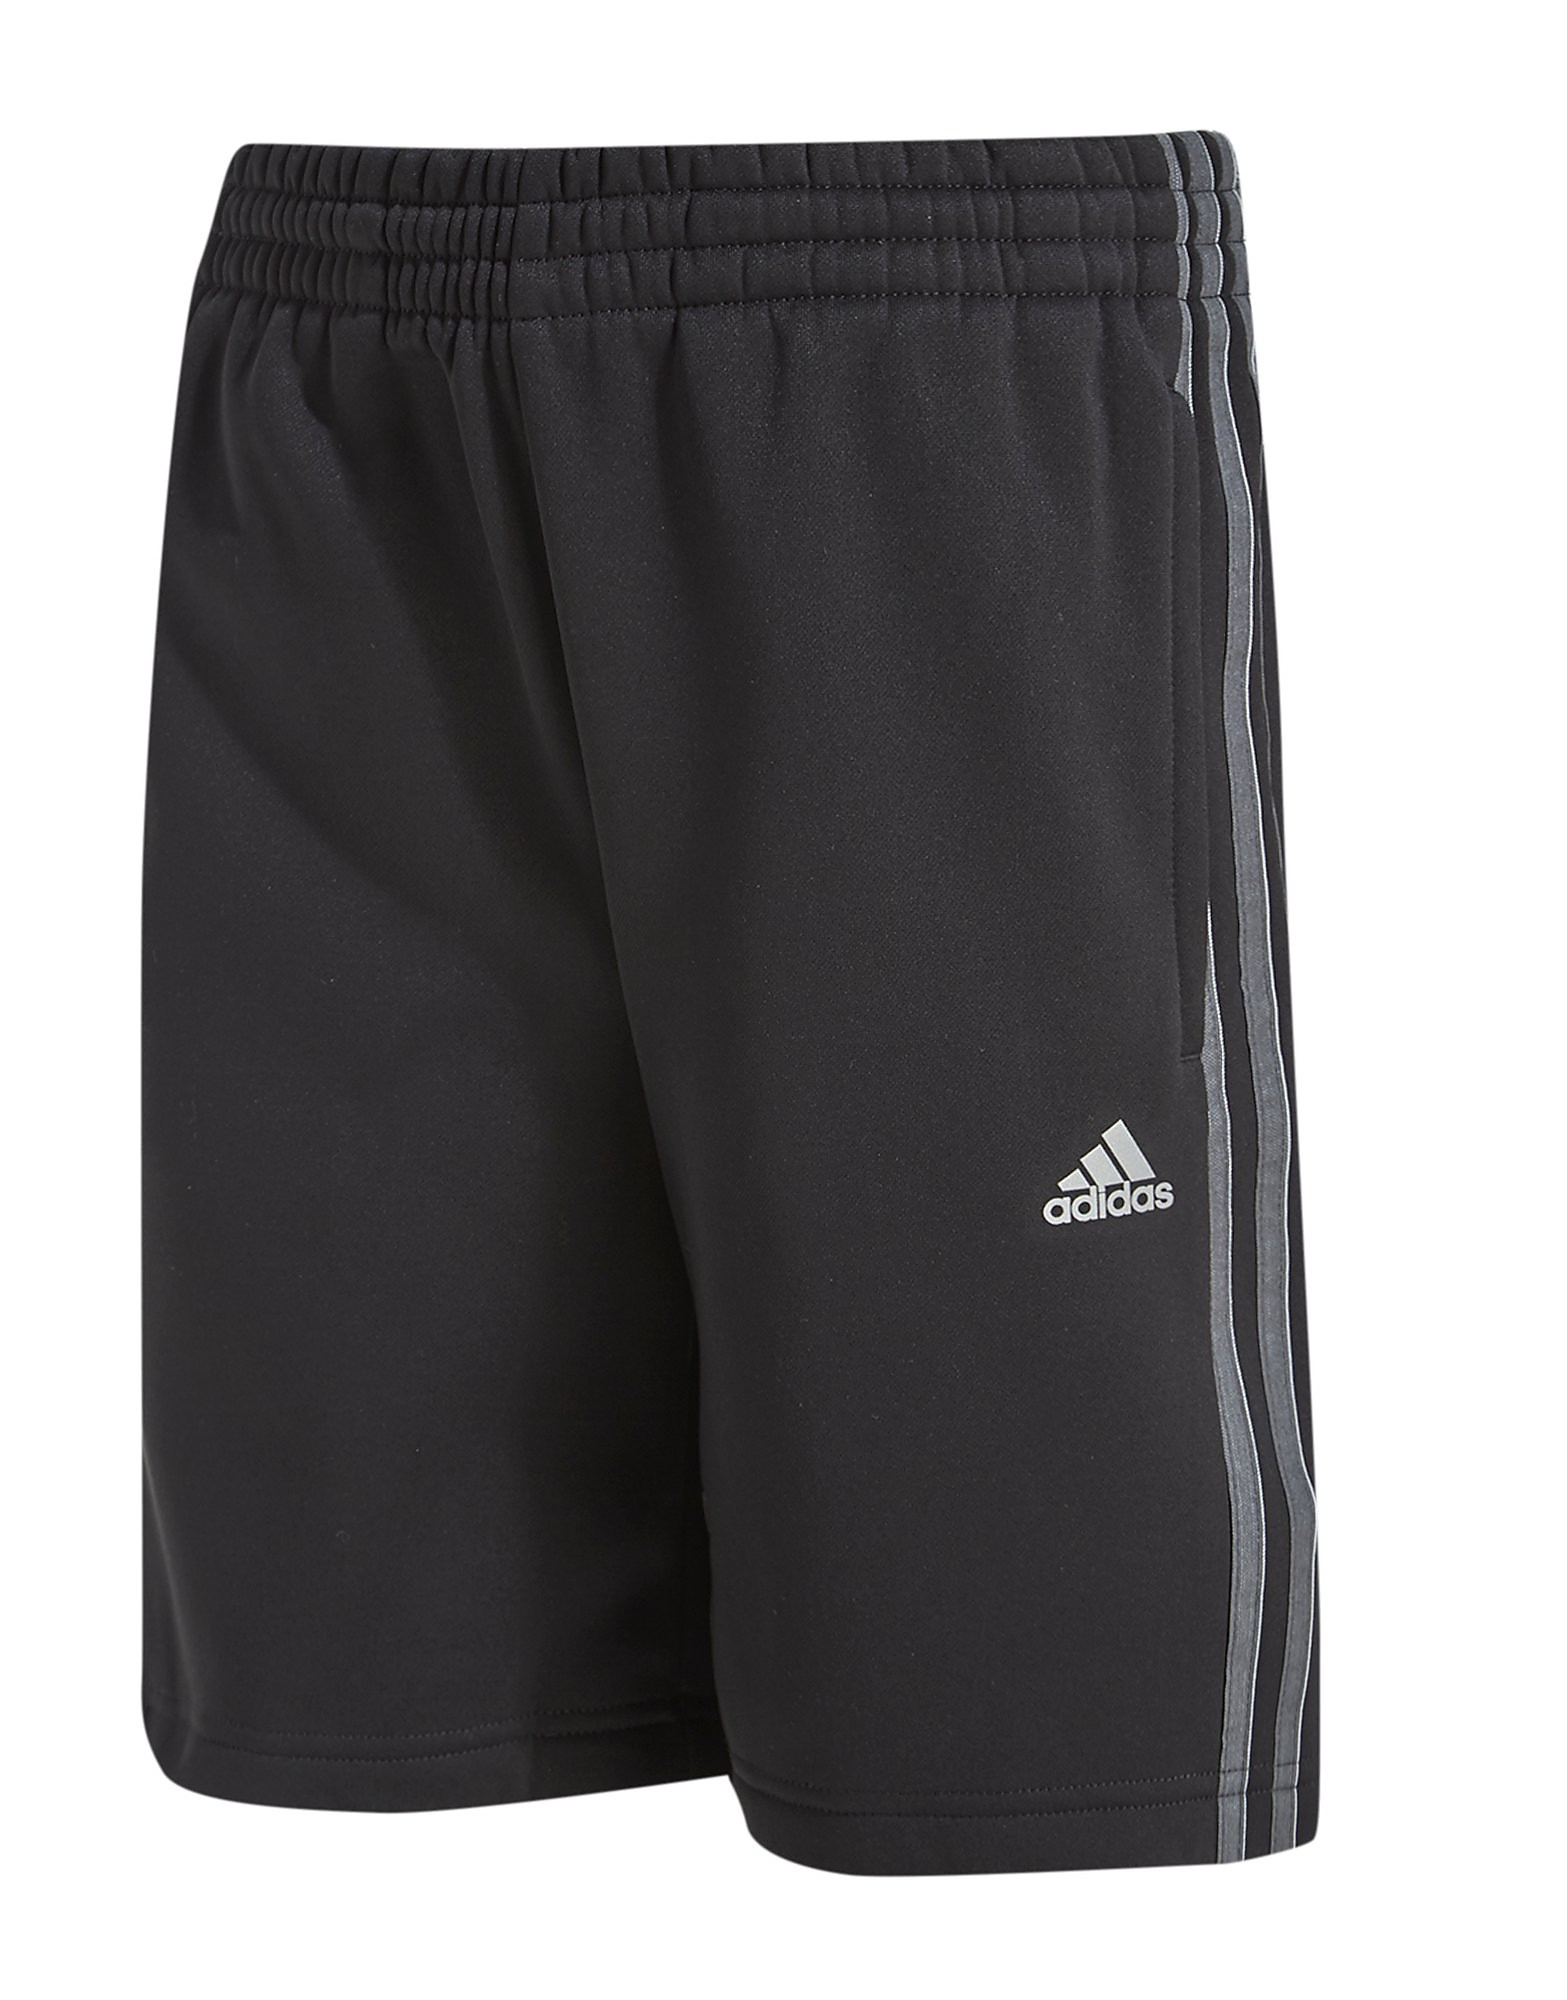 adidas Reflective Shorts Junior